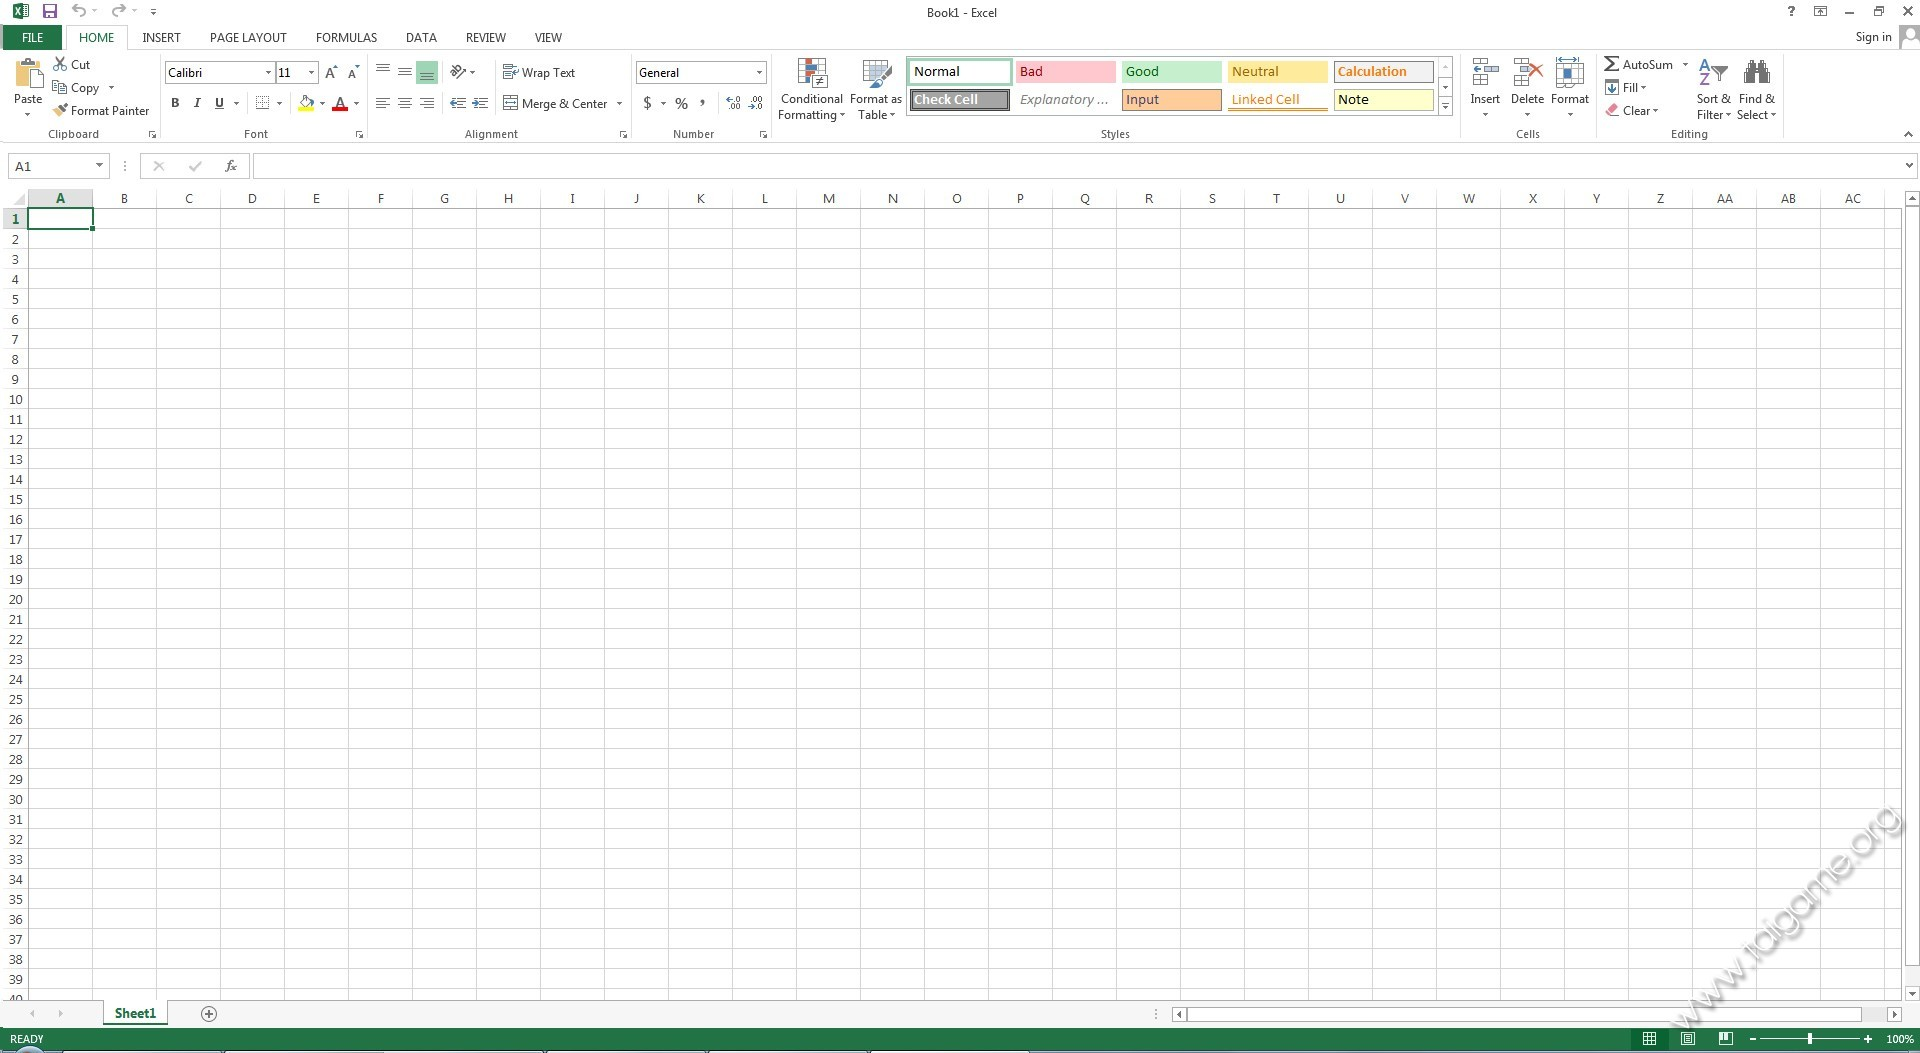 Microsoft office professional plus 2013 64 bit tai game download game ph n m m ng d ng - Office pro plus 2013 comparison ...